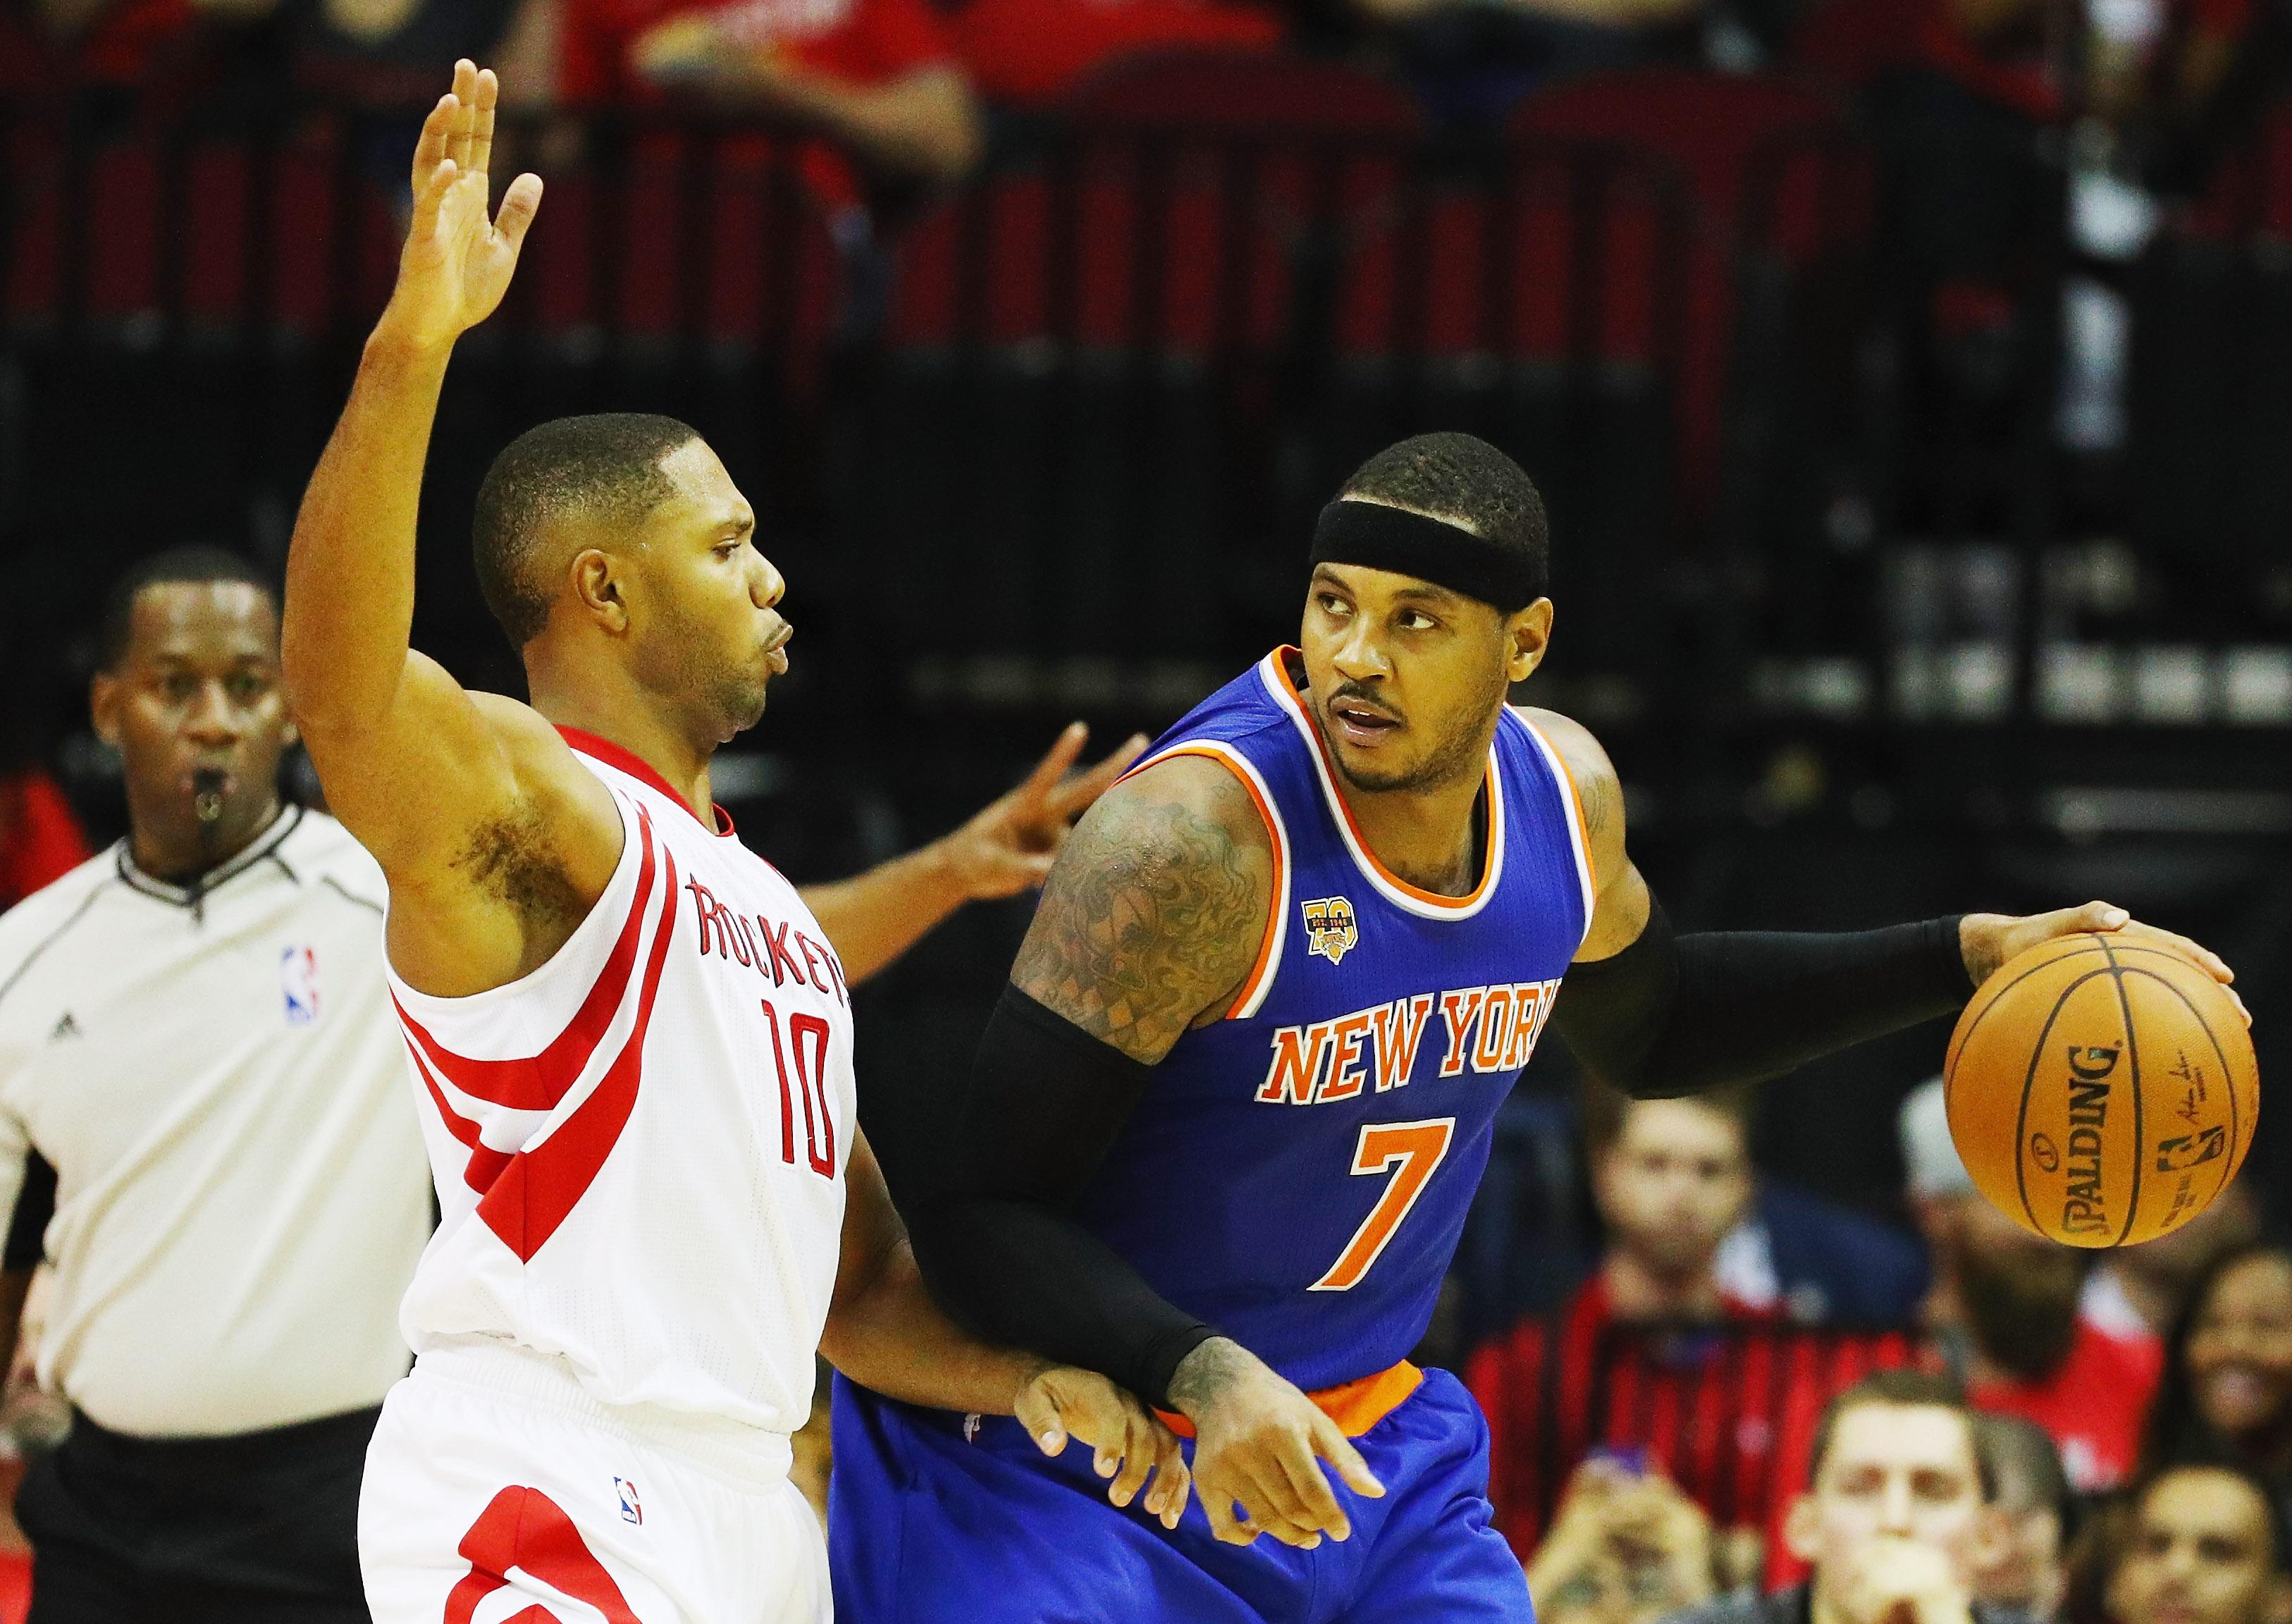 Will The New York Knicks Trade Carmelo Anthony? Houston Rockets Not A Lock To Acquire All-Star